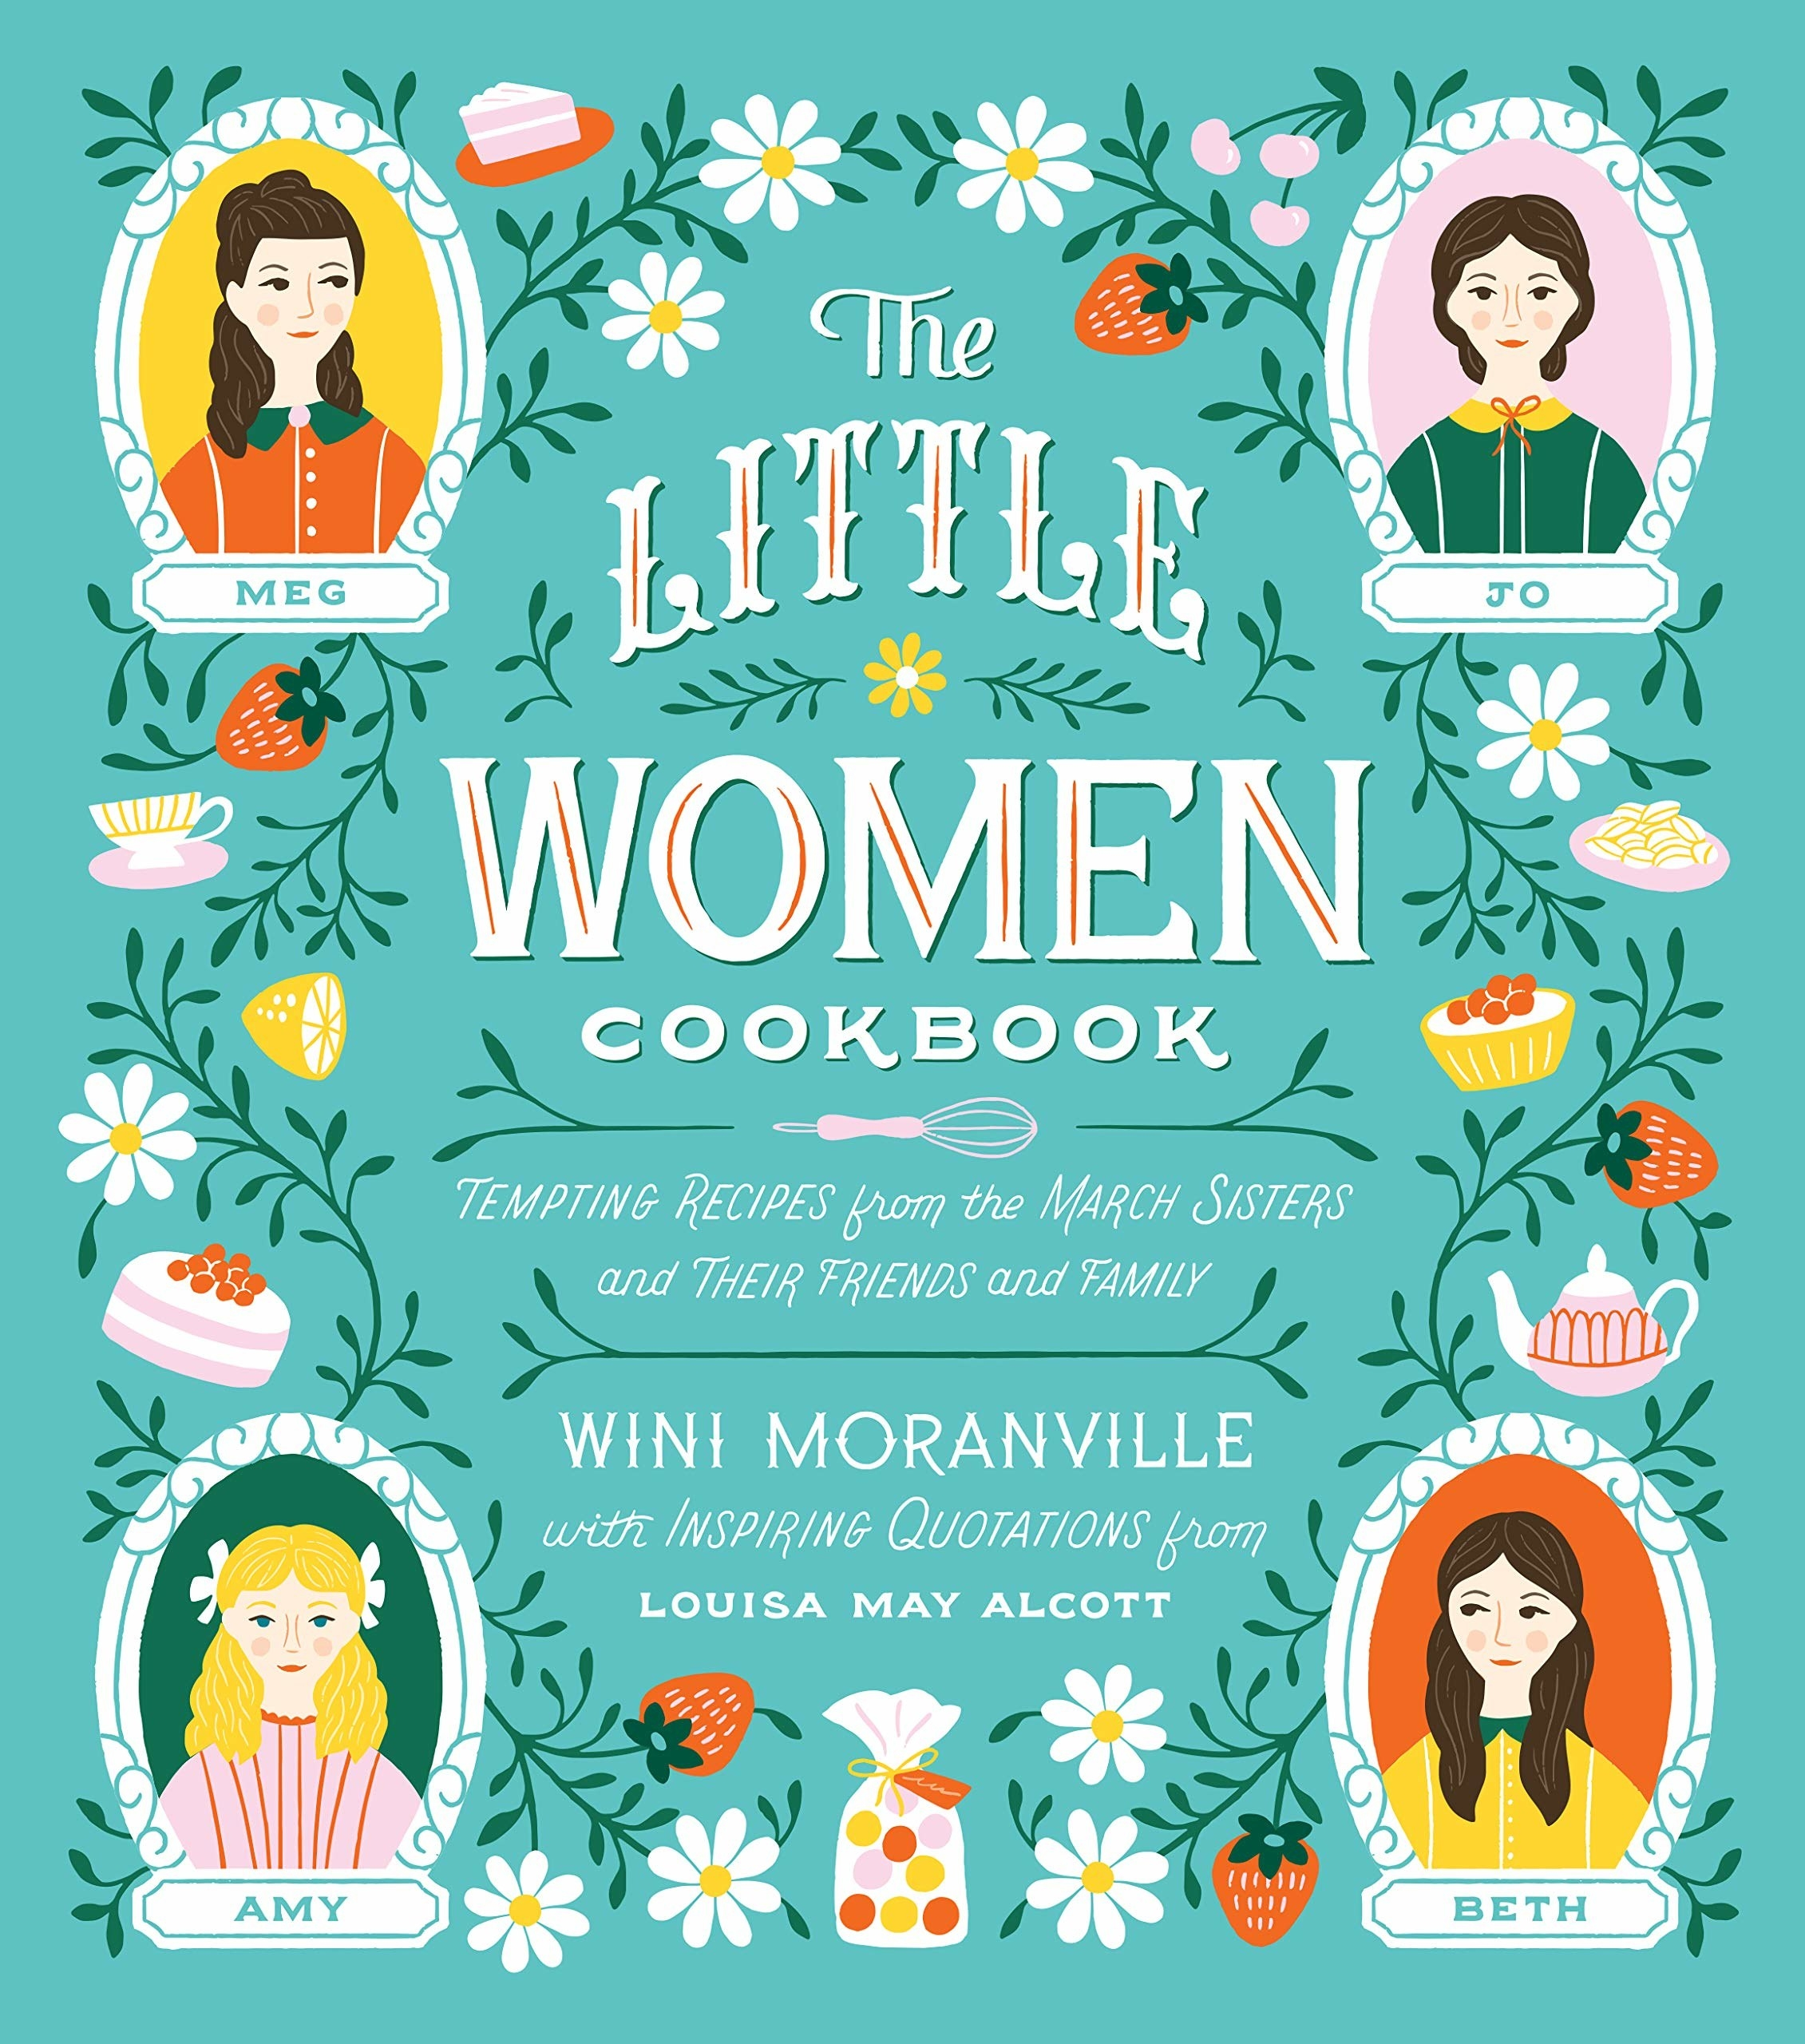 The cover of the book with illustrations of the four march girls